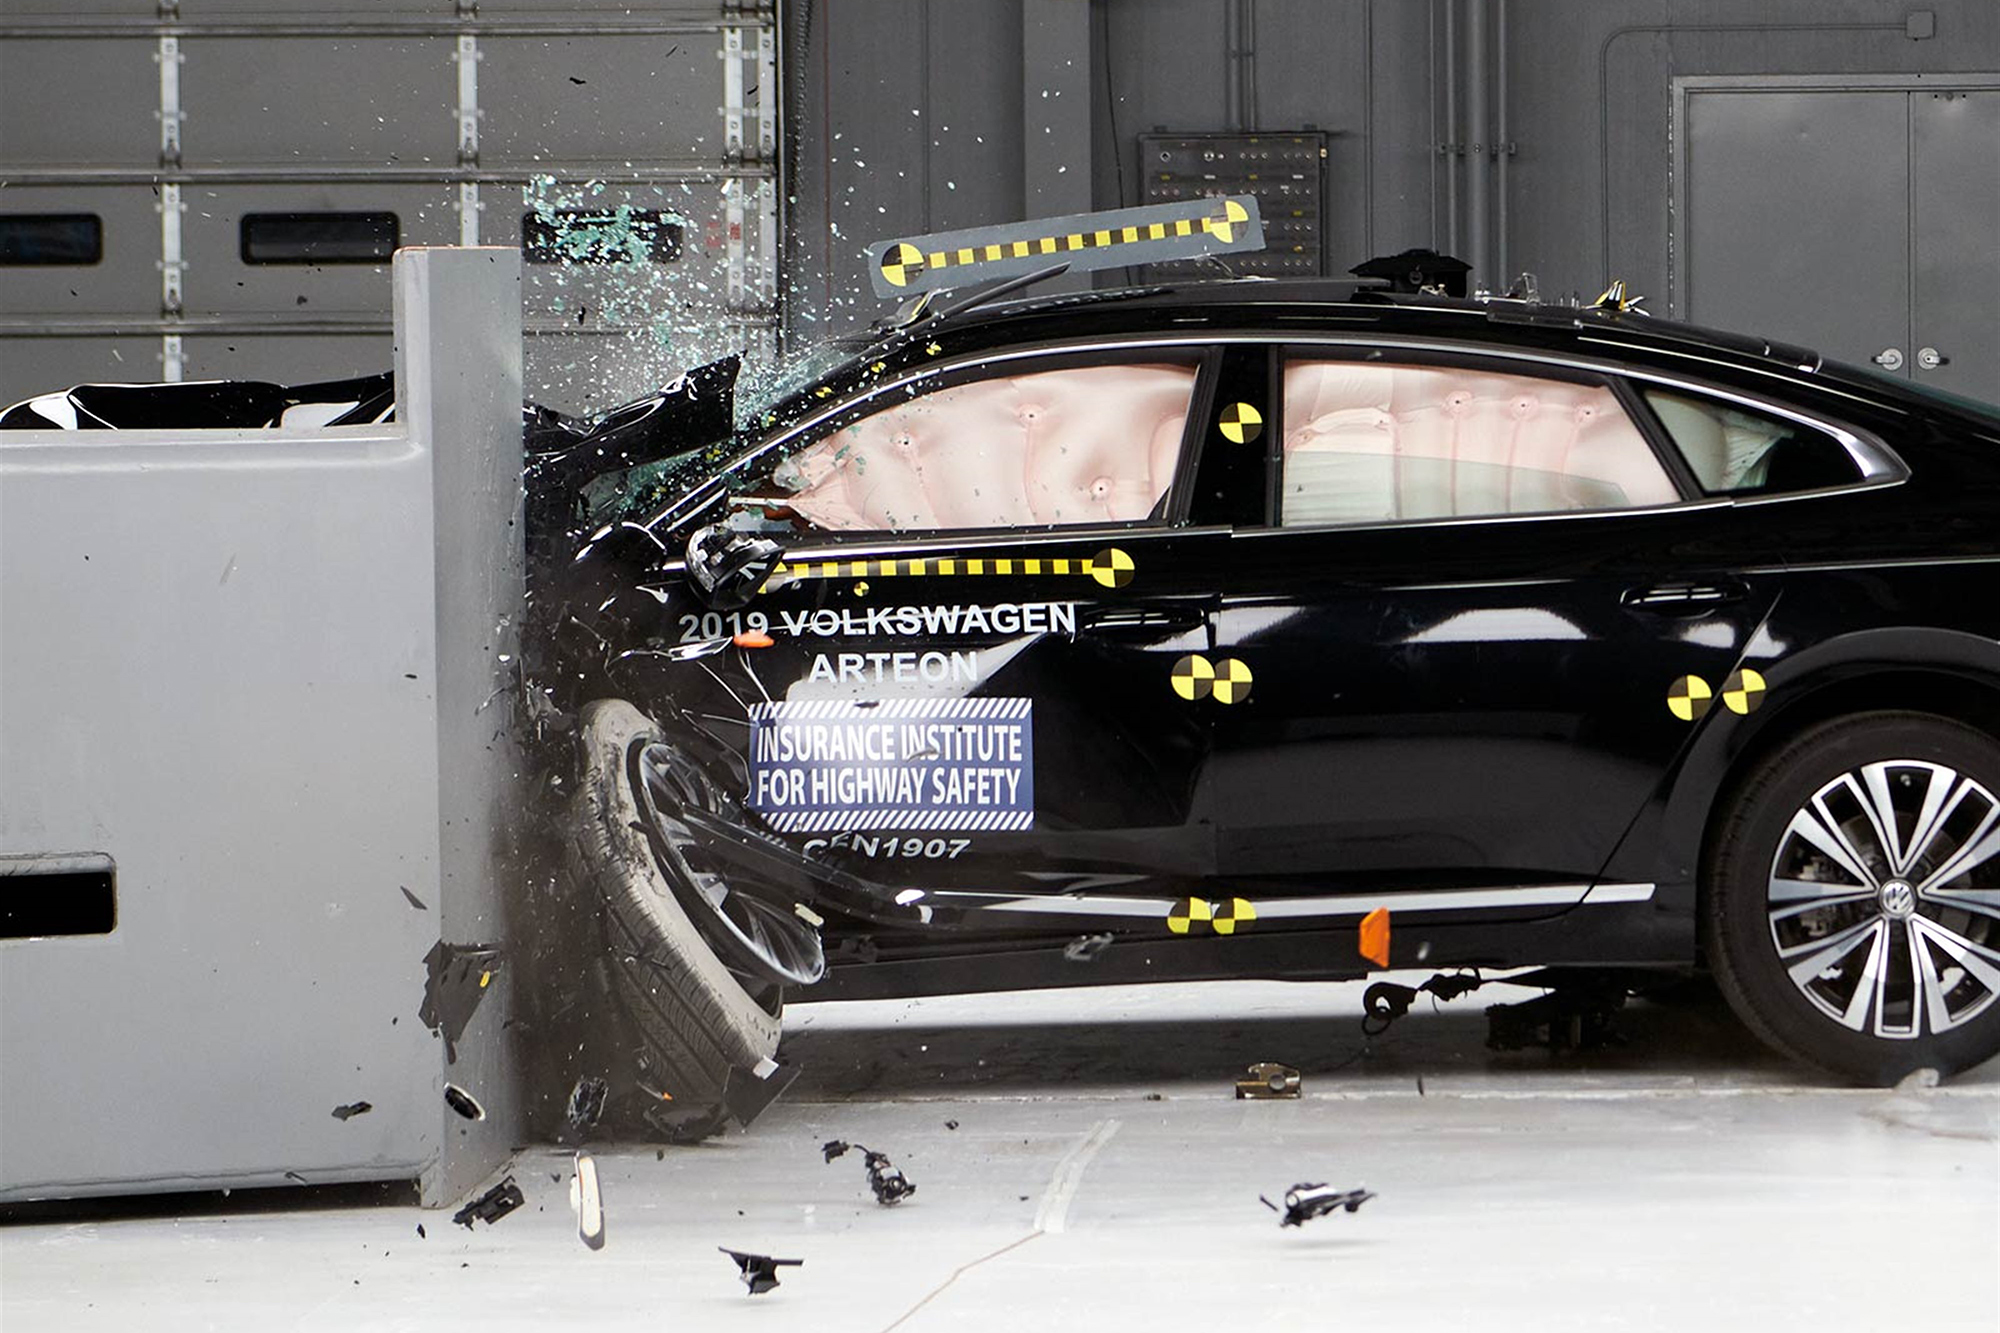 2019-Volkswagen-Arteon-black-crash-iihs-crash-test